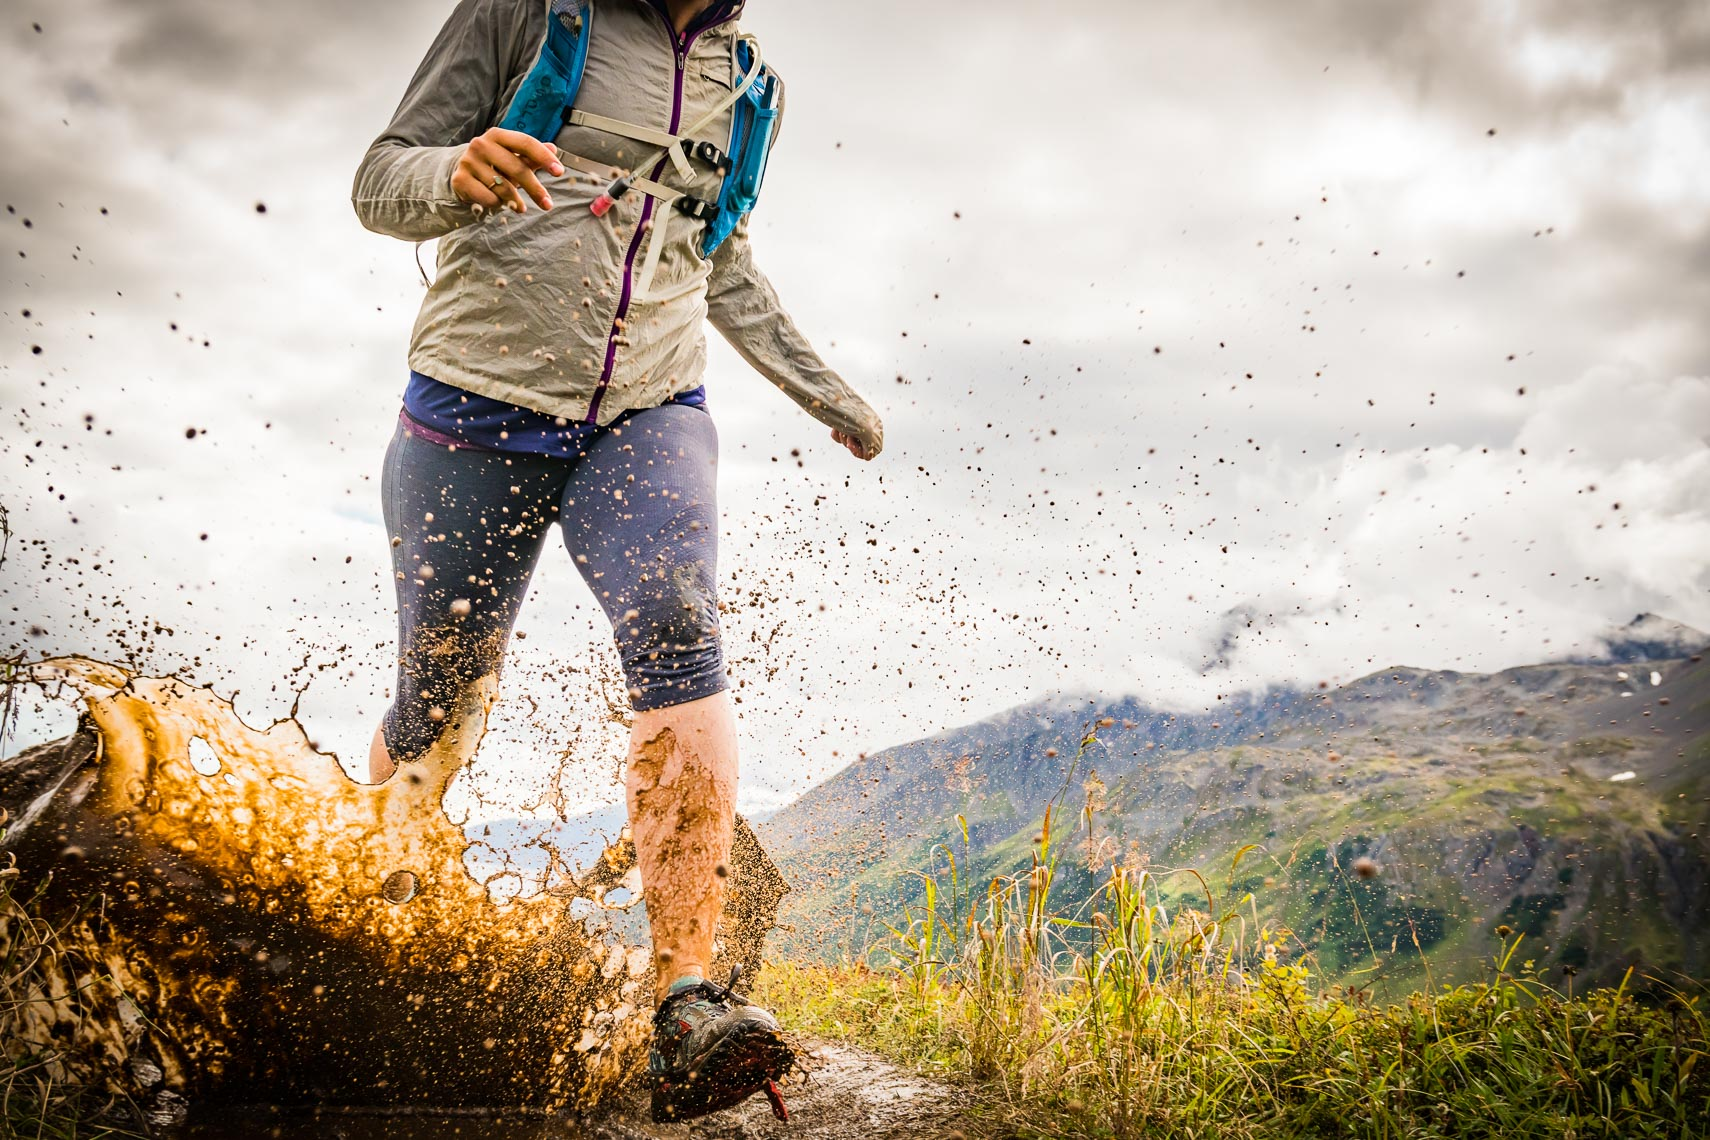 Alaska Trail Runner Mud Puddle Splash | Michael DeYoung